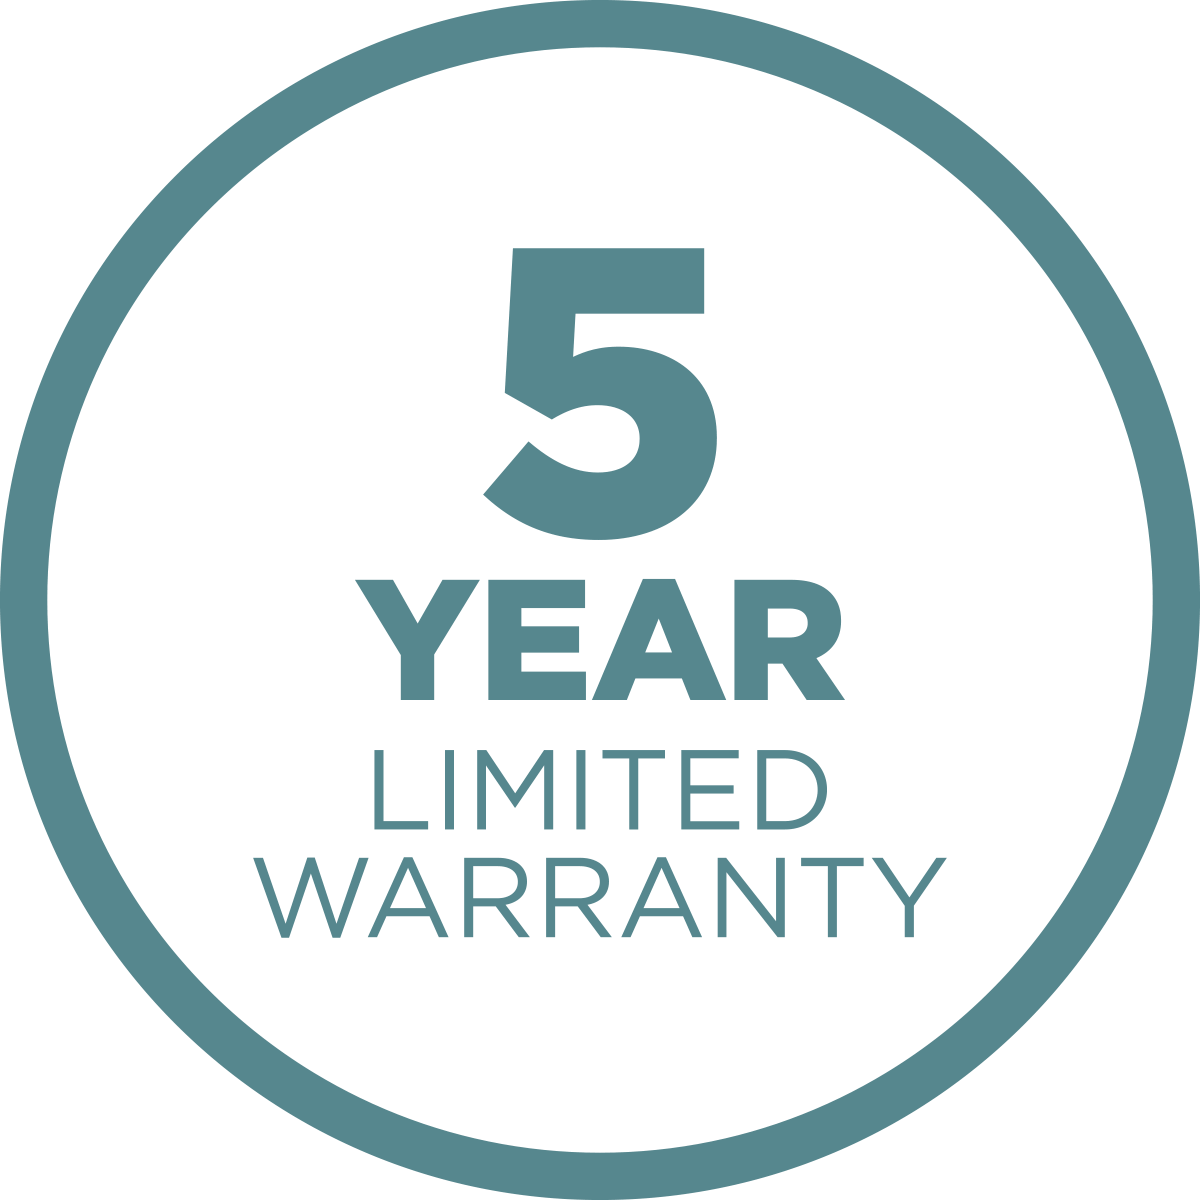 5-Year Limited Warranty Icon